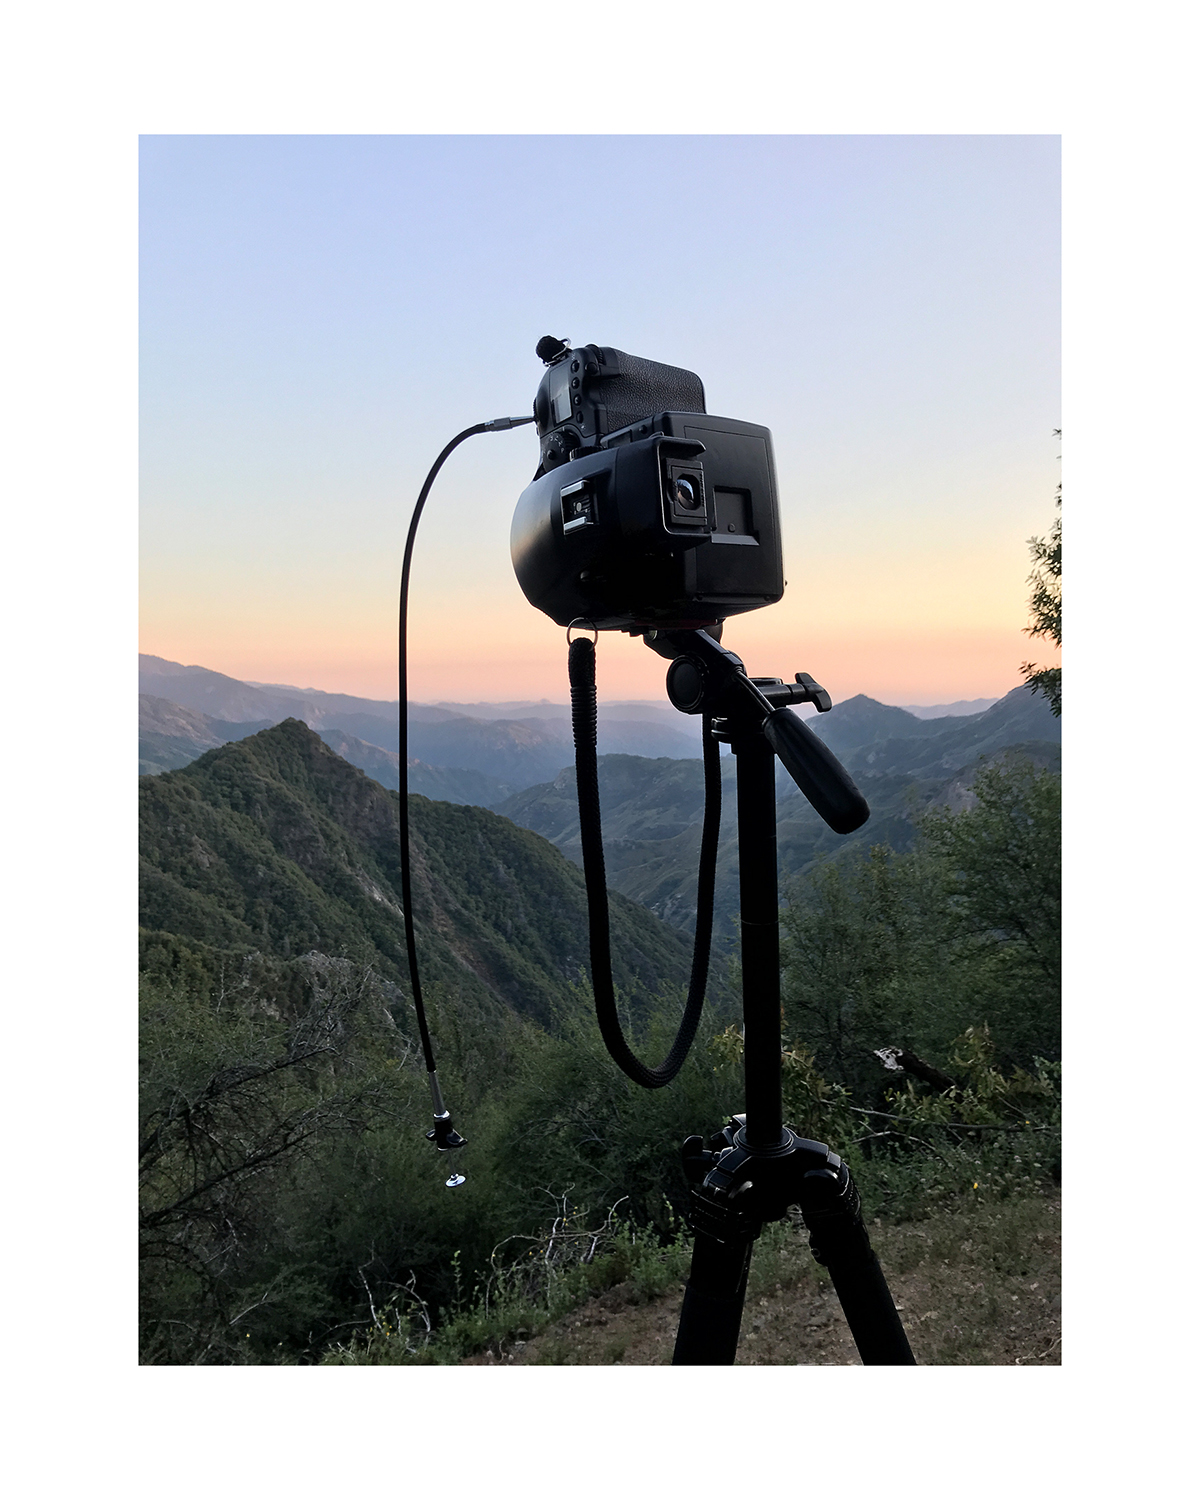 A photo of a video camera set against a mountainous background.